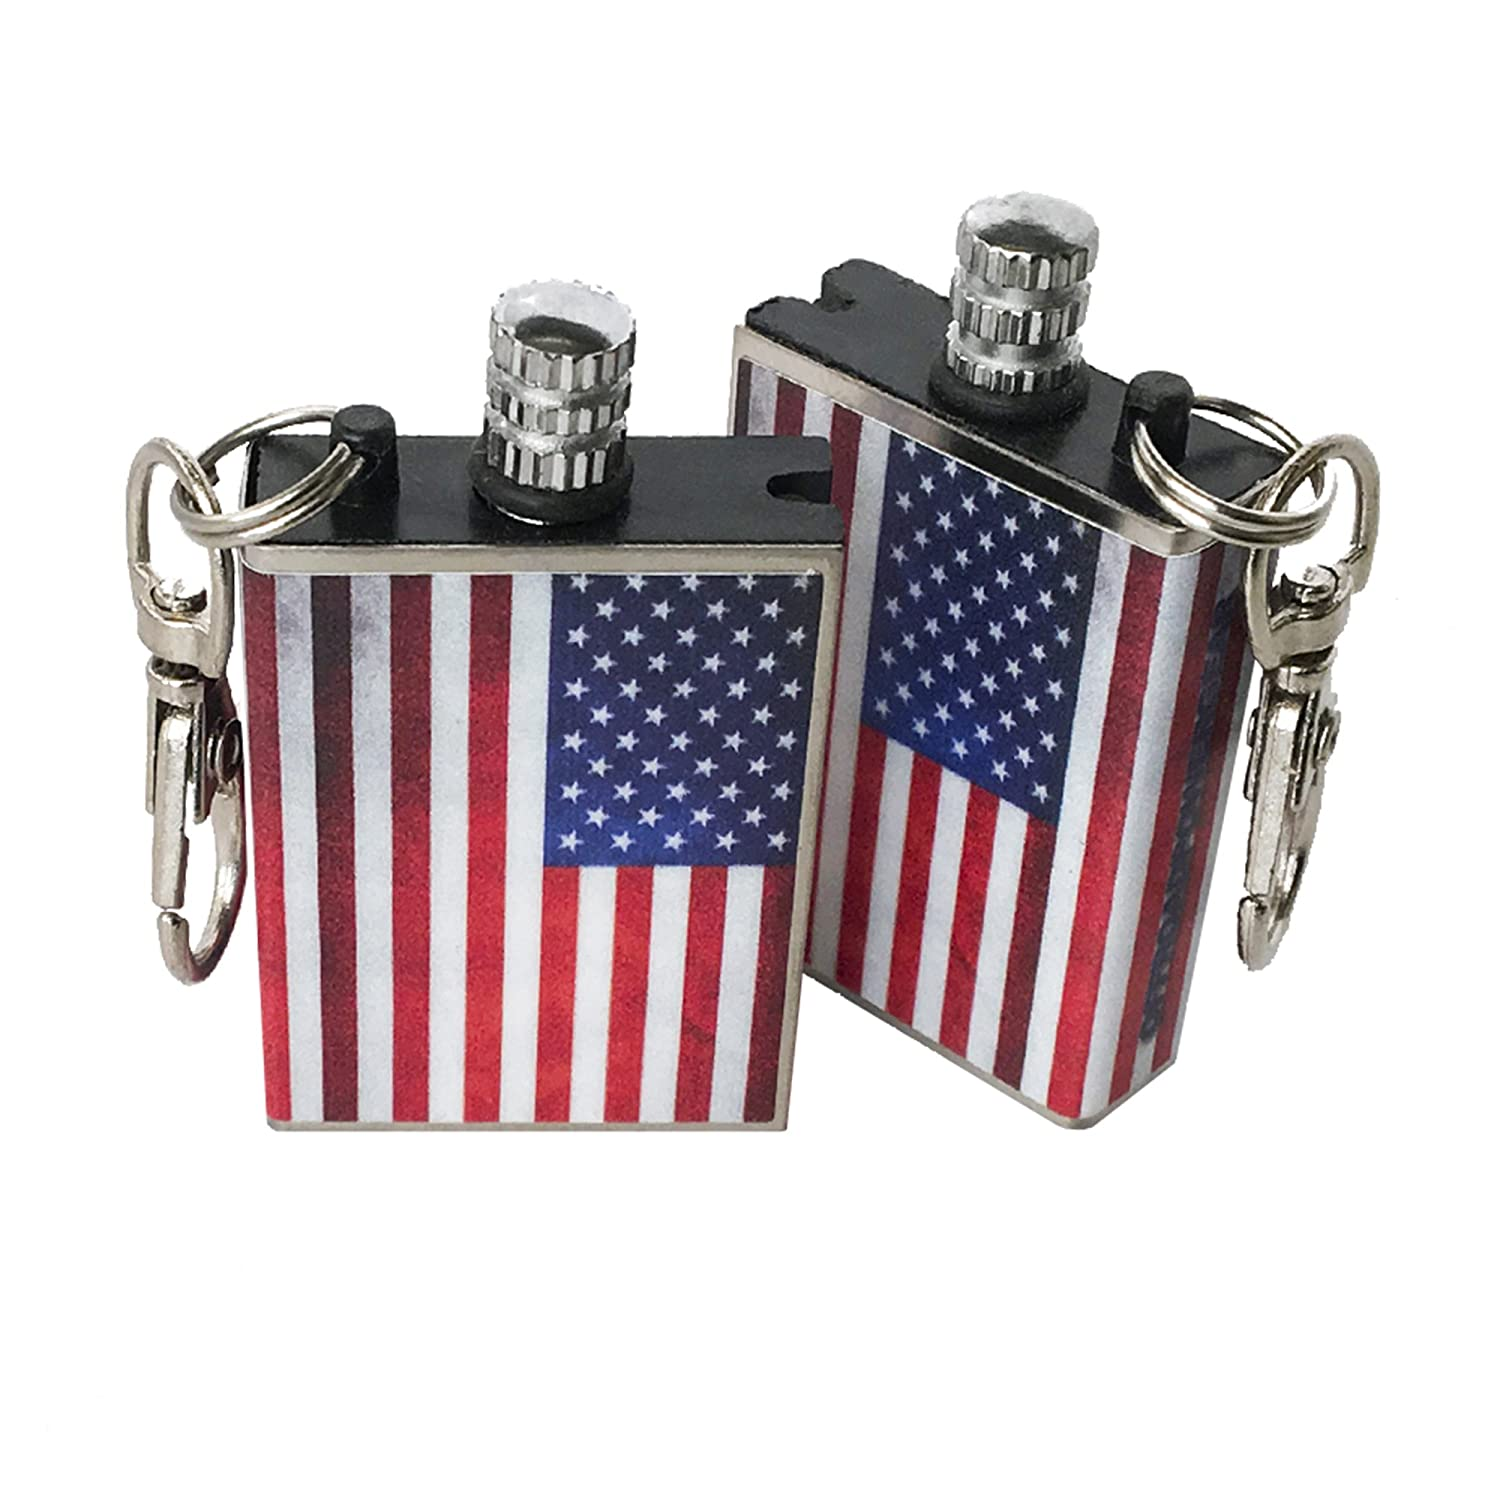 Waterproof Metal Survival American Flag Permanent Match OPG3 P-M-A-F